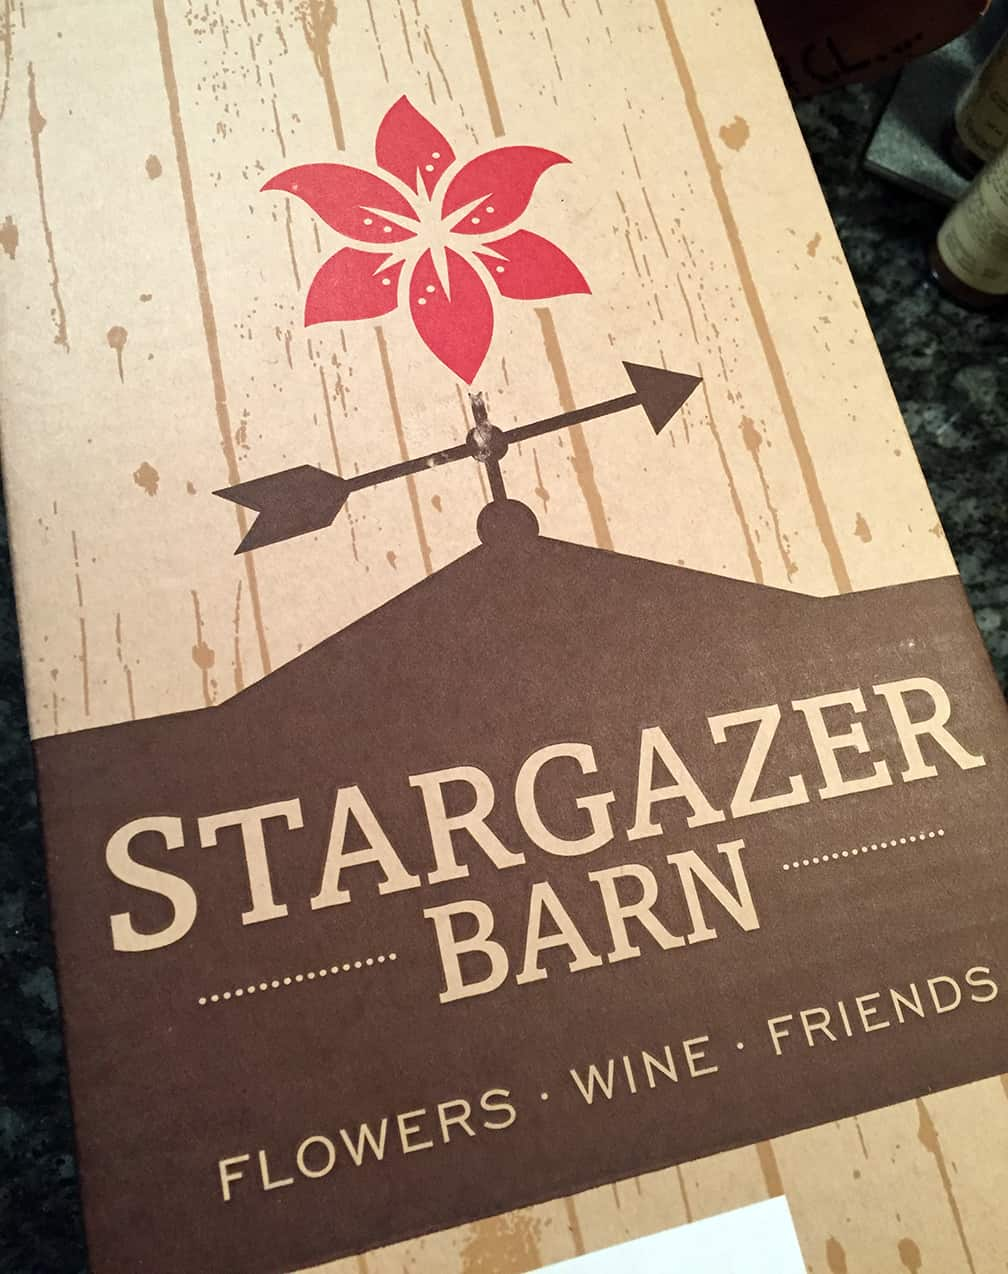 Stargazer barn does it up right. They ship overnight so the flowers arrive in perfect shape.